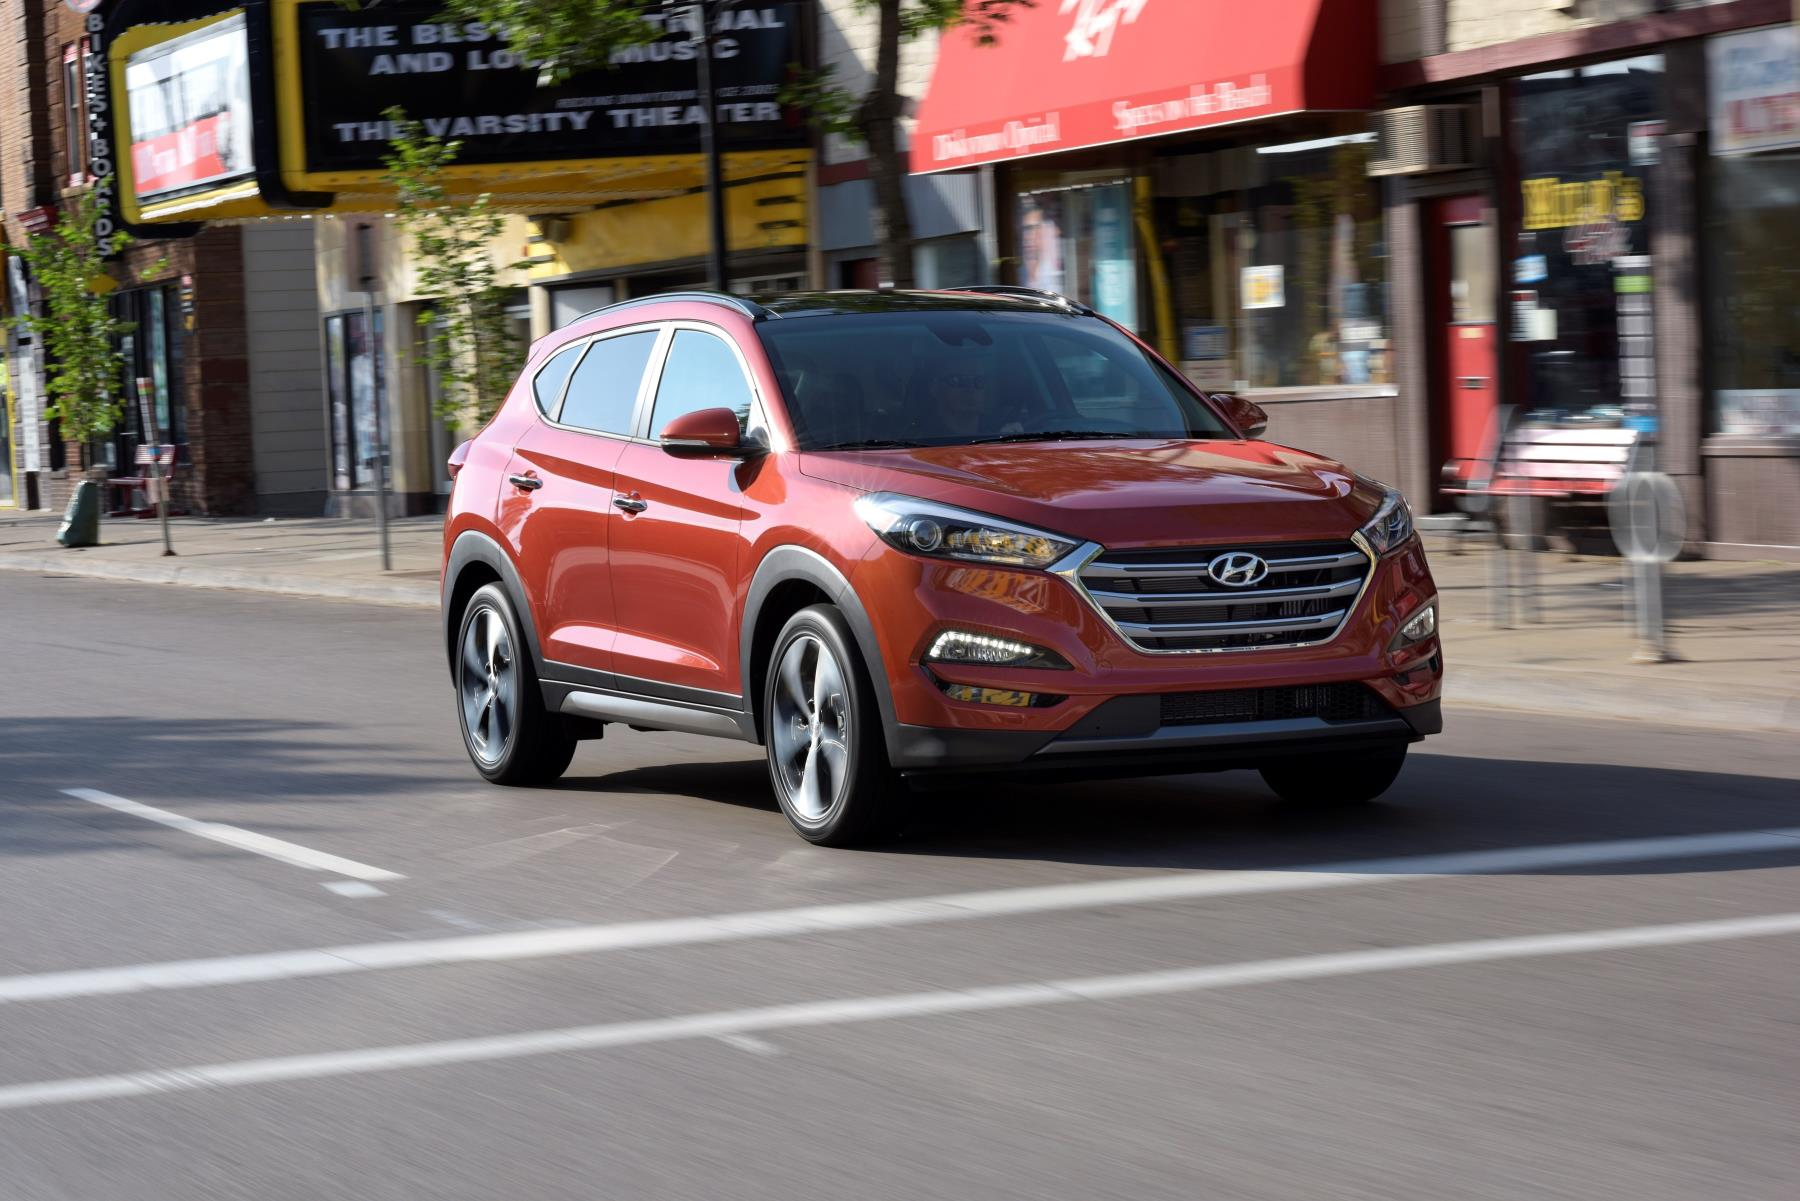 Hyundai Tucson, one of Hyundai's top selling vehicles in calendar year 2017